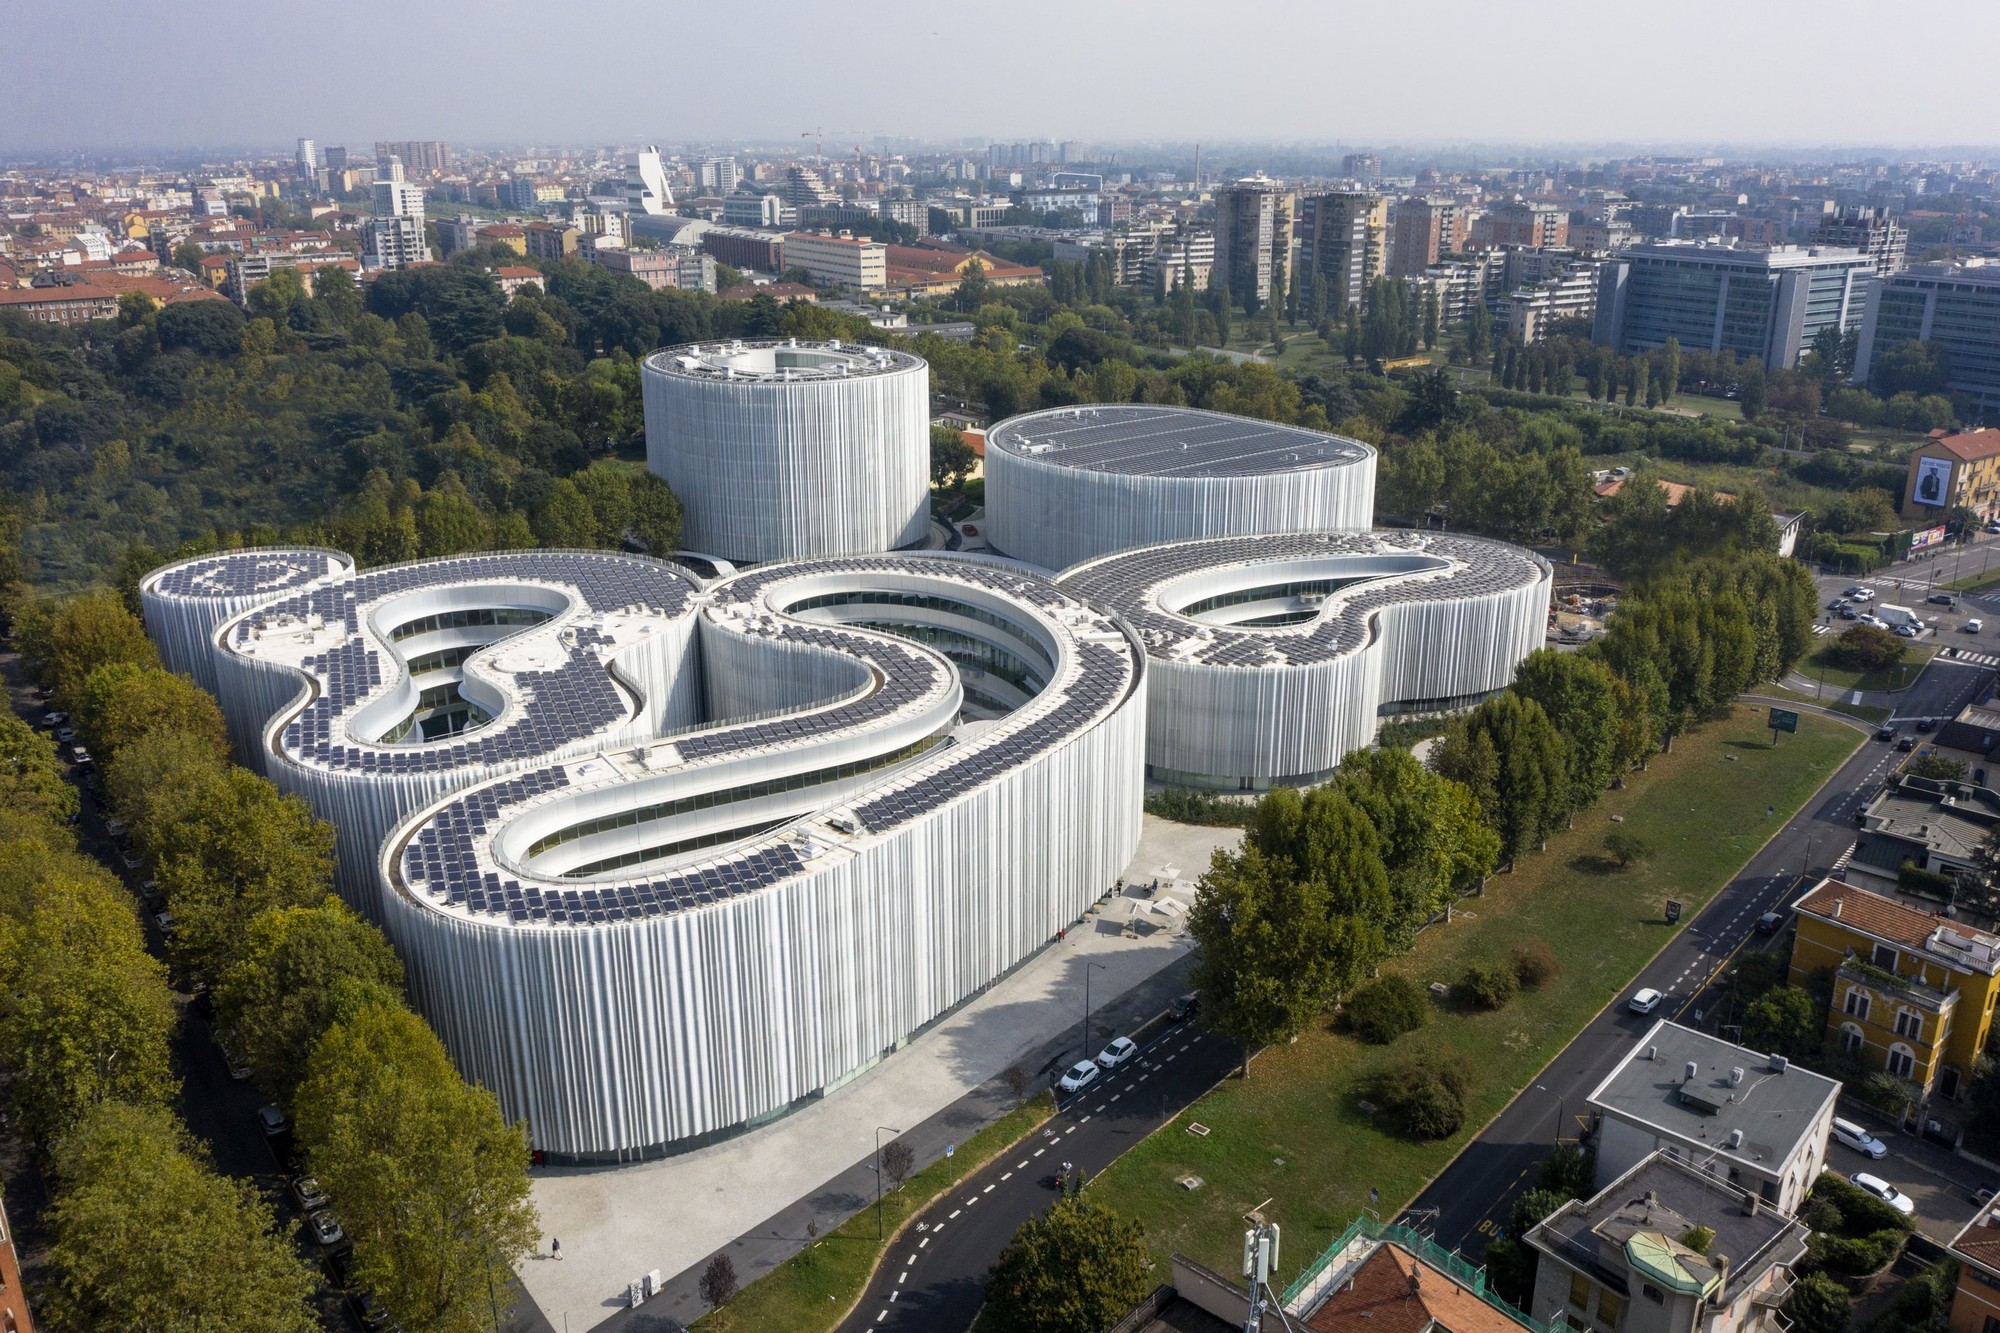 Aerial view of the SDA Bocconi campus in Milan